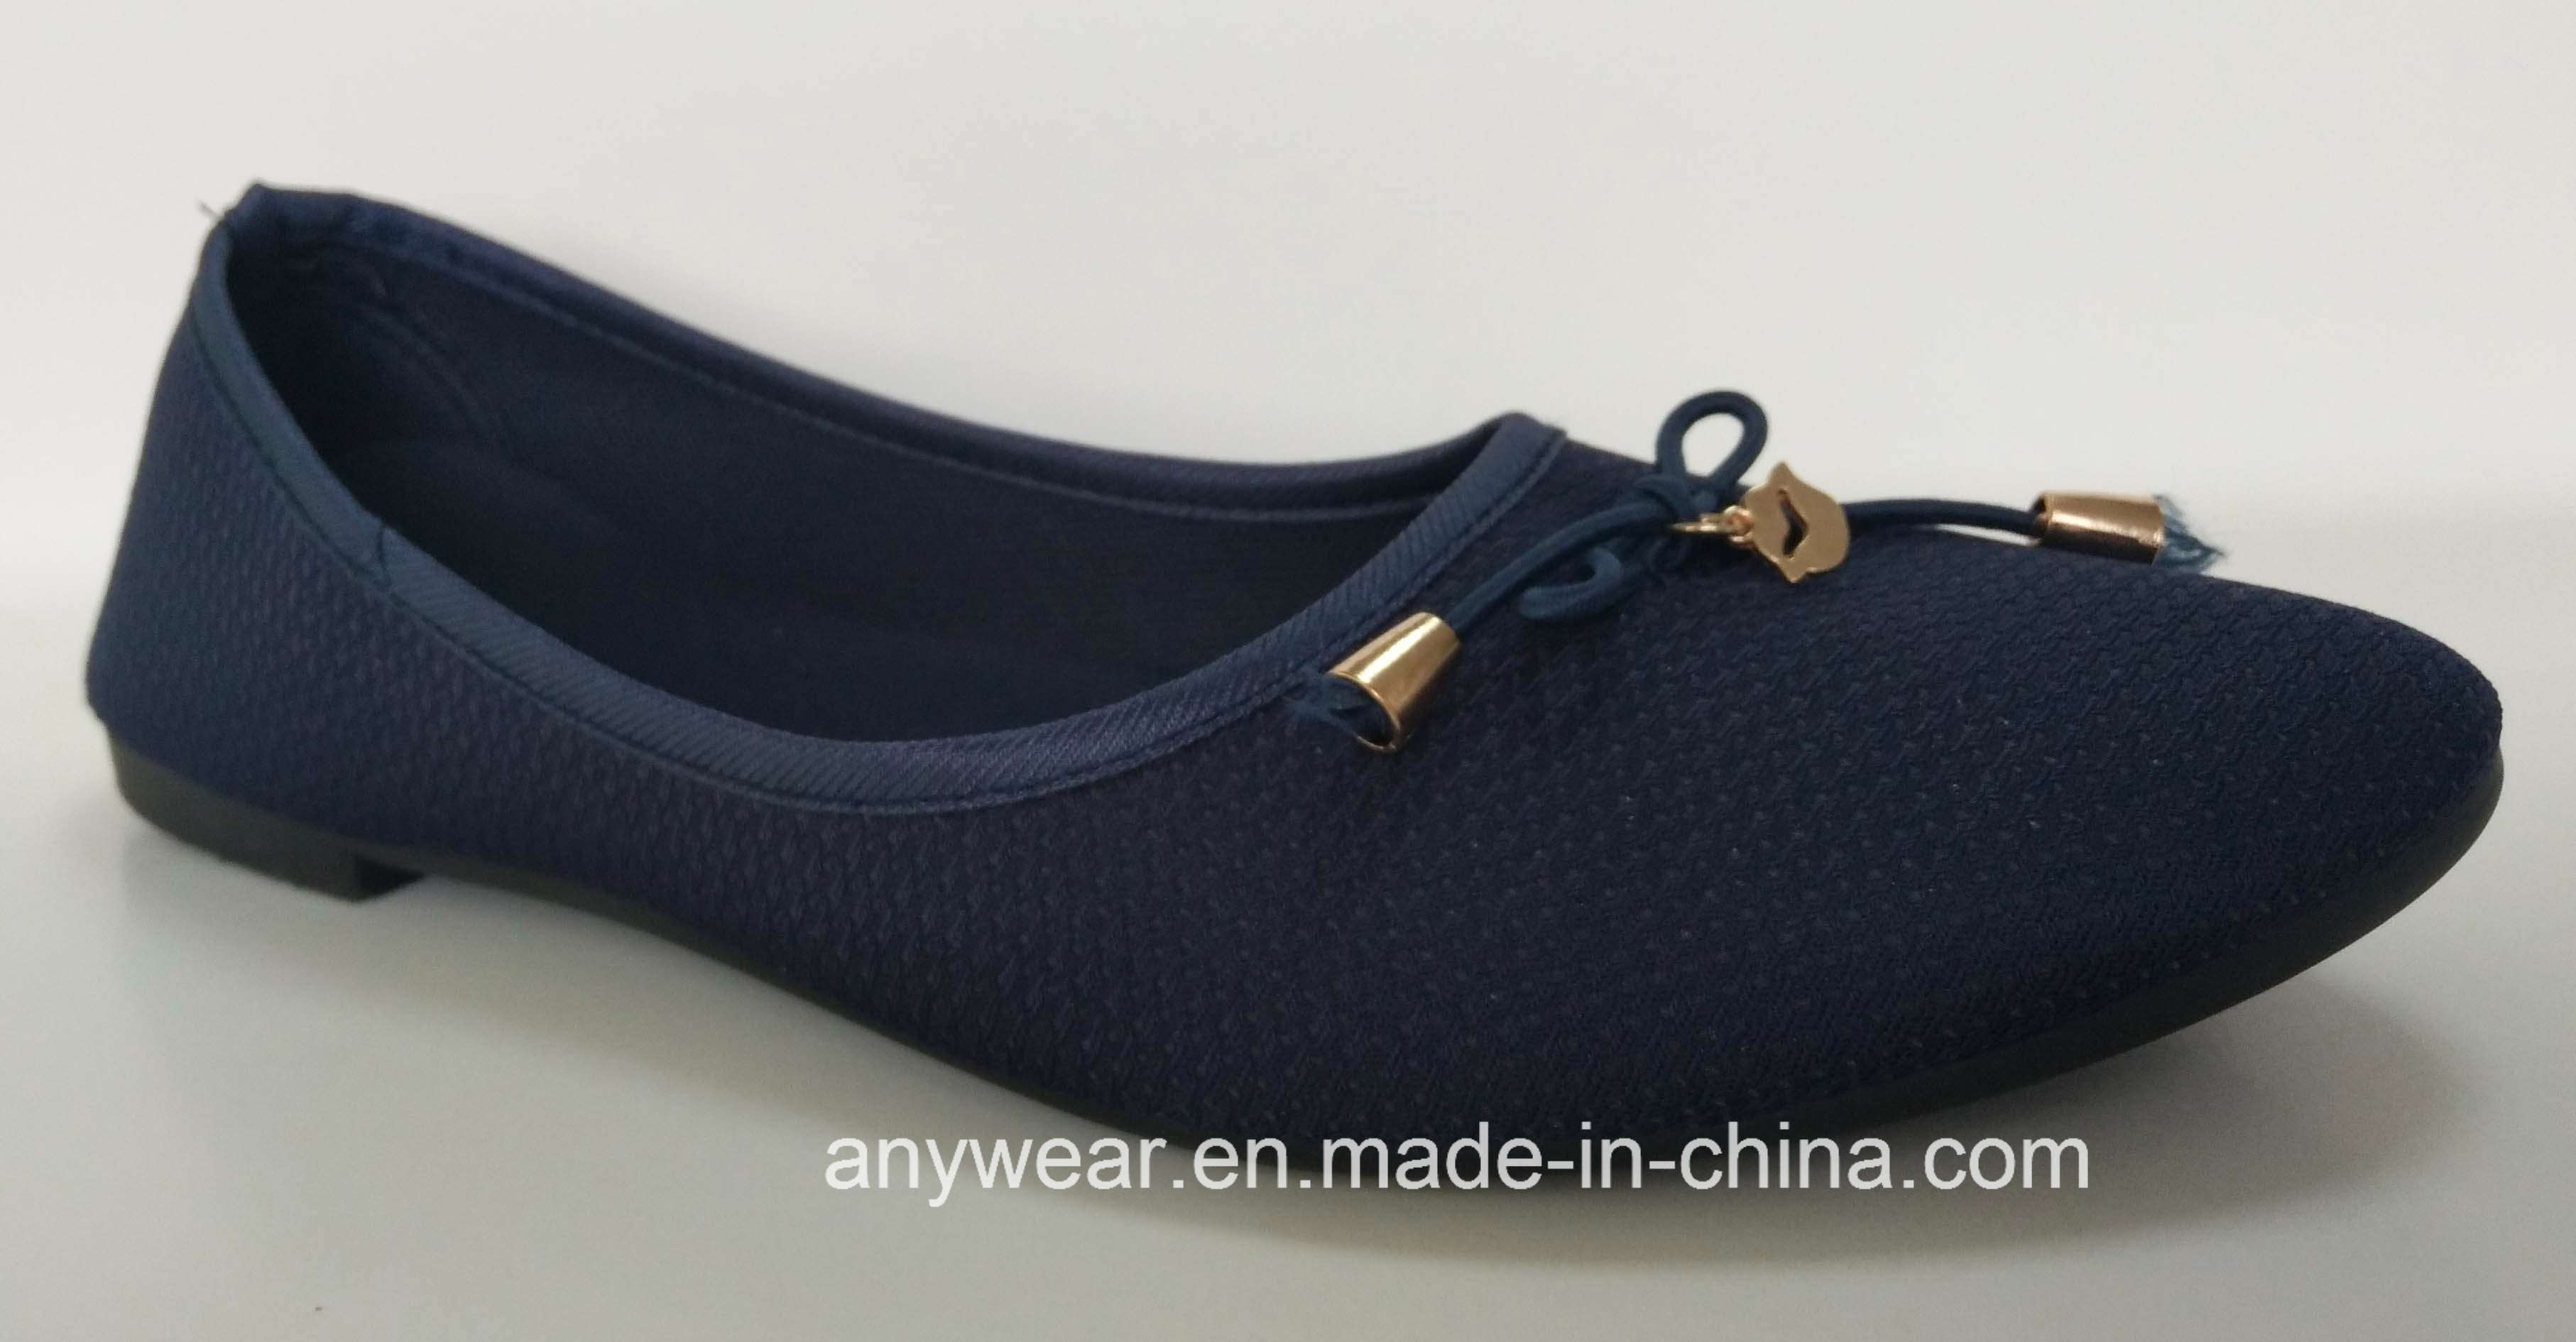 4f3ce46db China New Fashion Comfort Flat Girl Footwear Wholesale Shoes for Women  (735) - China Shoes, Shoe